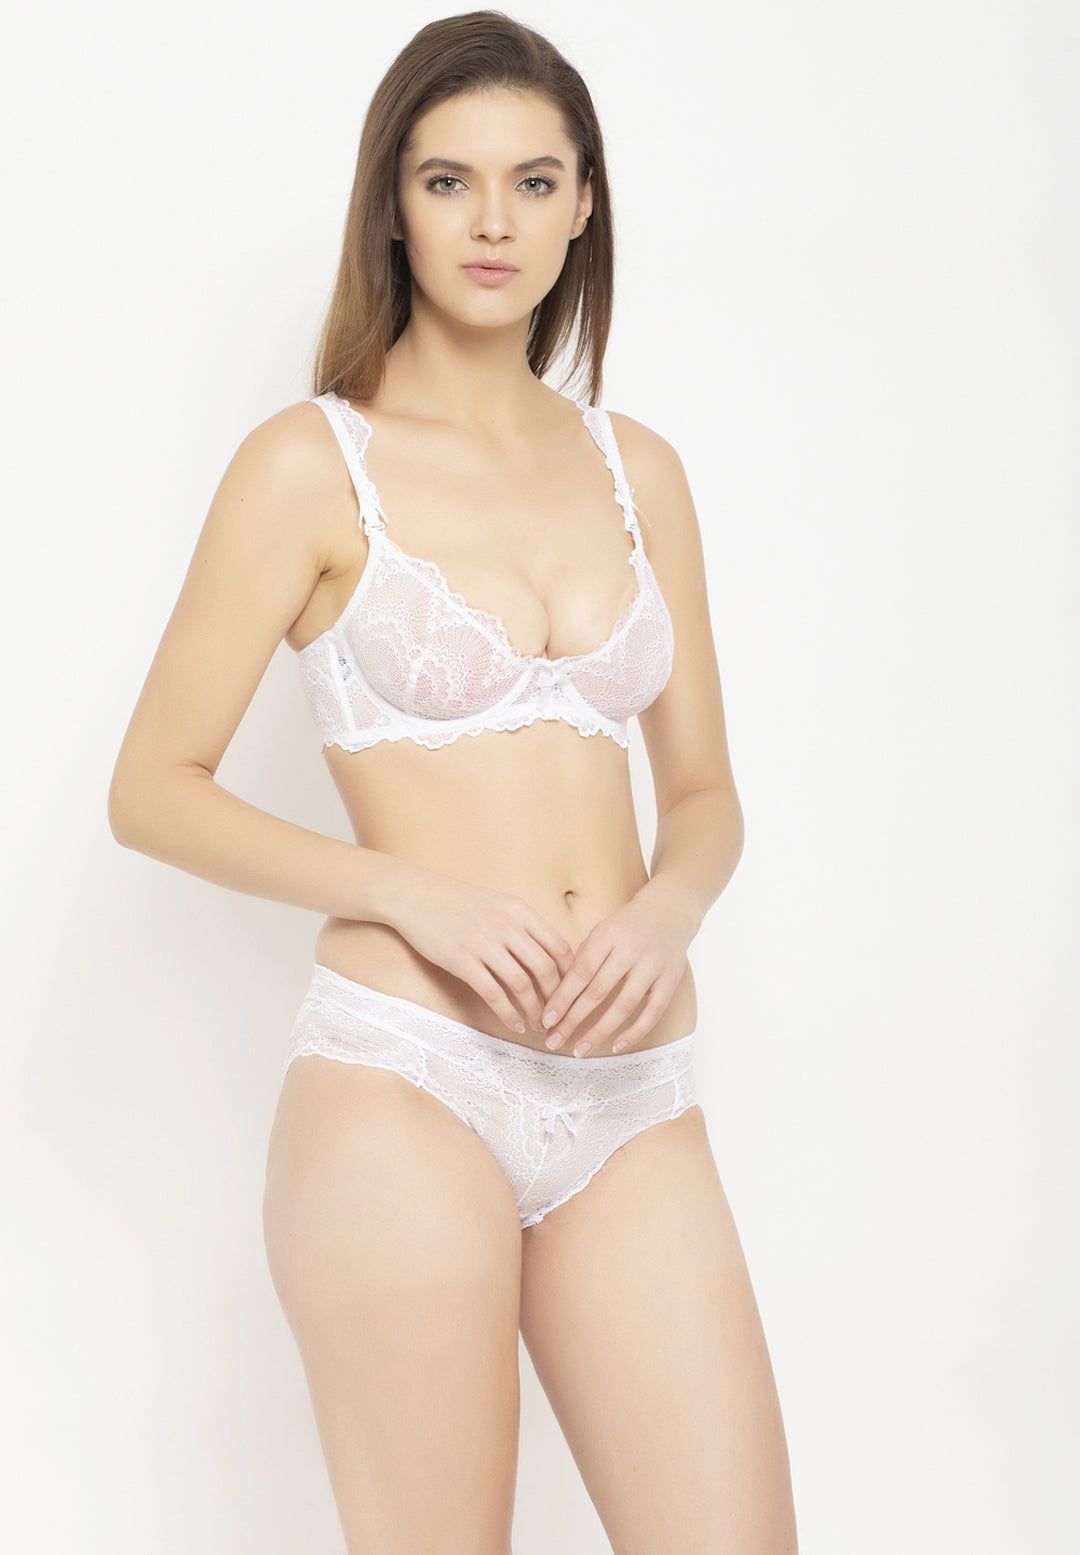 Avant-Garde Paris Non Padded Non-wired Lace Lingerie Set